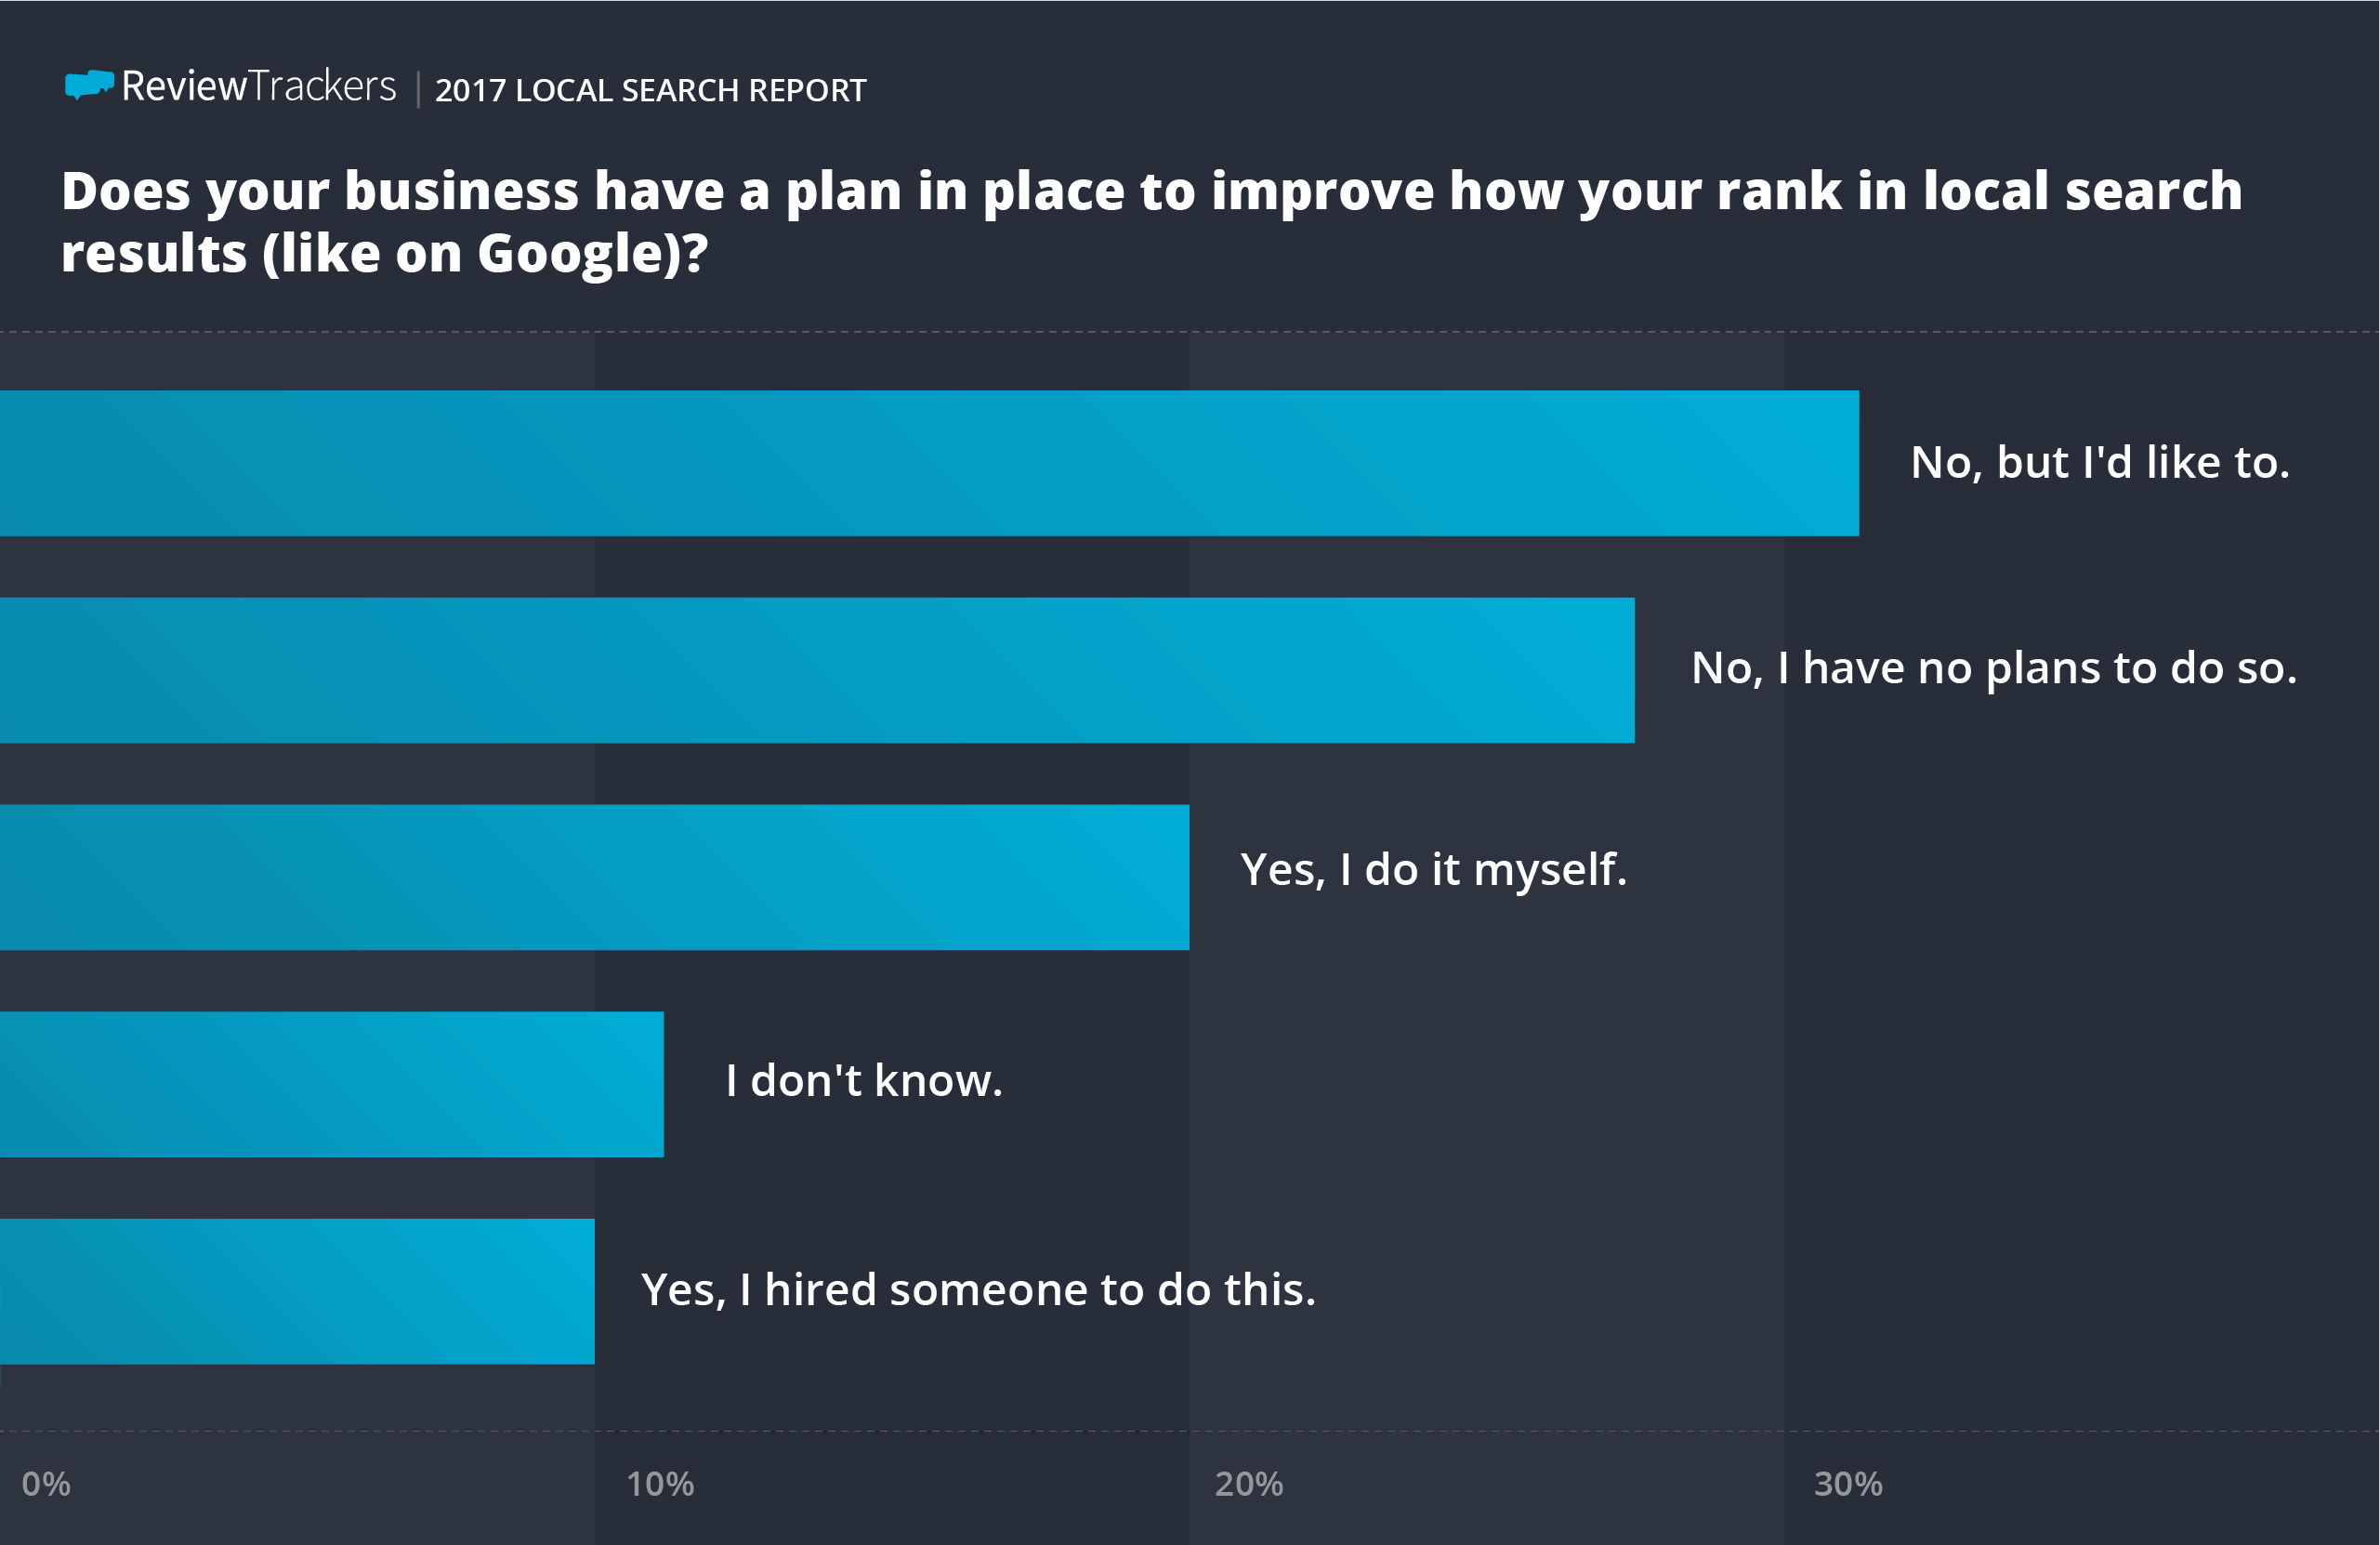 ReviewTrackers local search survey results 10